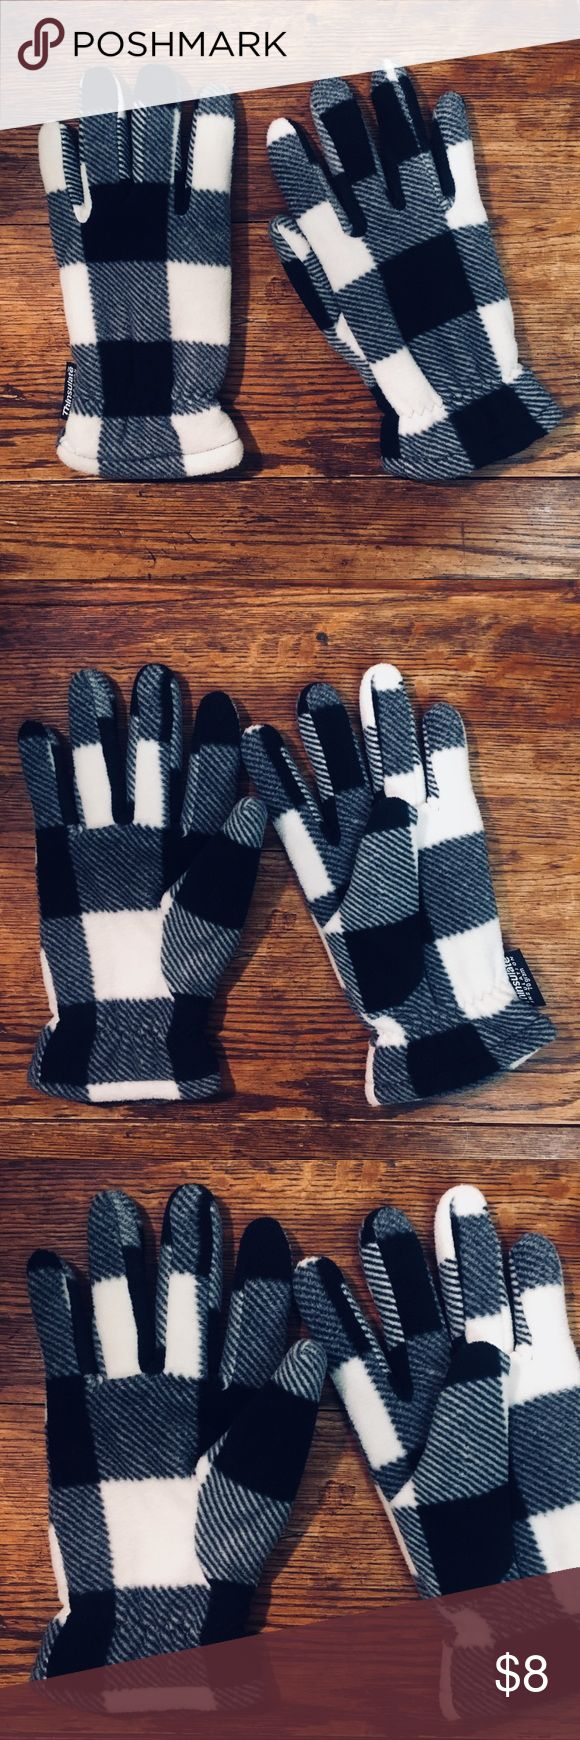 Thinsulate Fleece Plaid Check Gloves (70 gram) gentle wear, good pre-loved condition. worn a few times, washed 1x. soft and warm. 100% poly. black and white check plaid. perfect for the cold. Thinsulate Accessories Gloves & Mittens